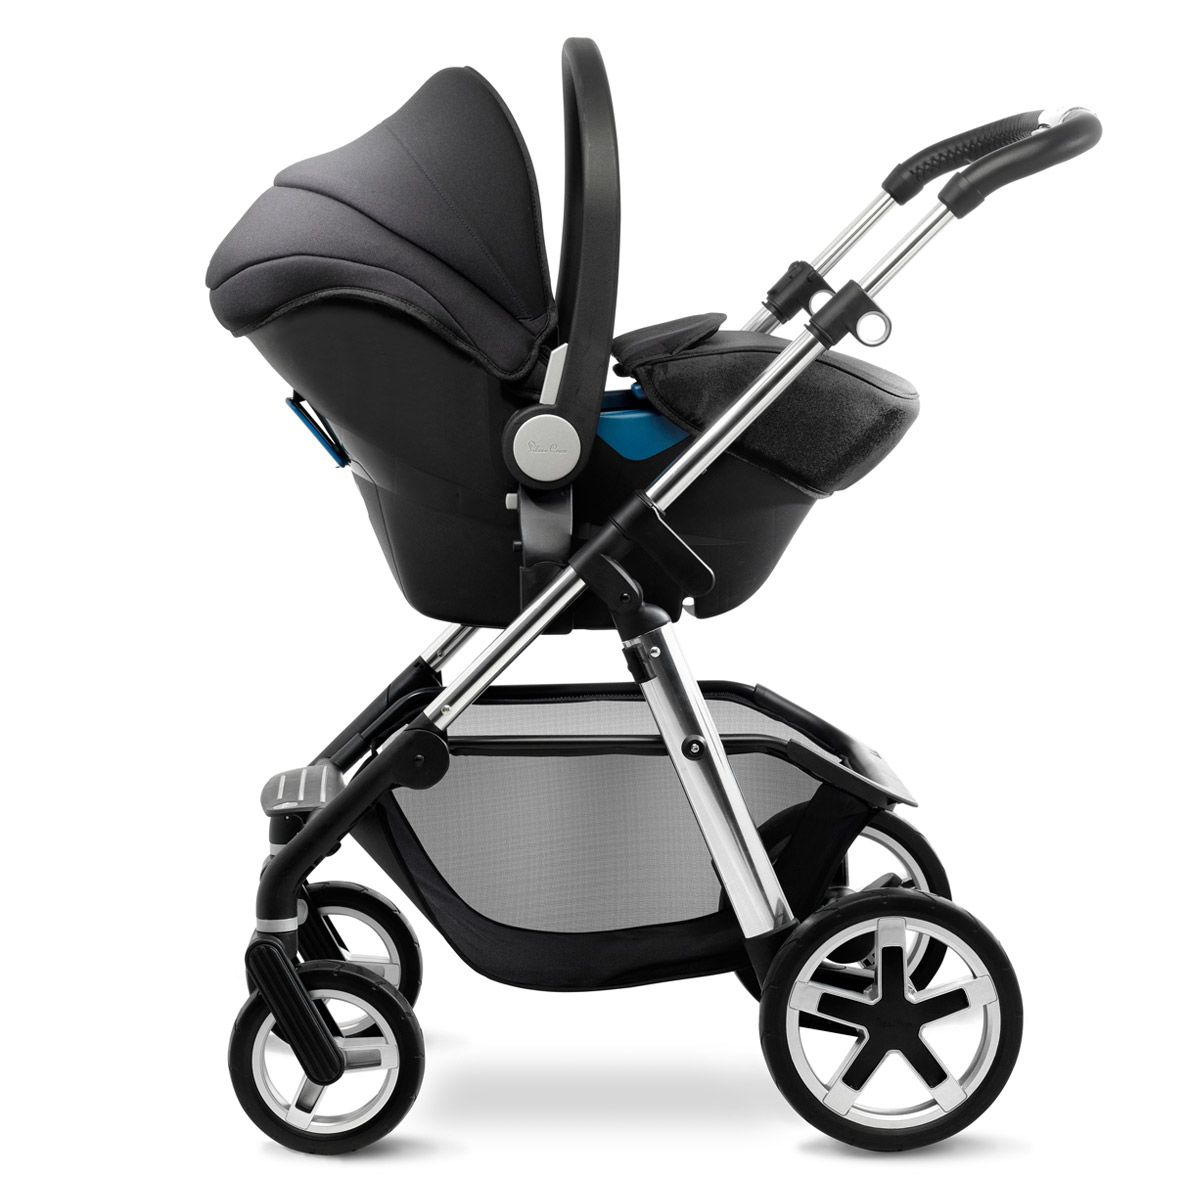 The Silver Cross Simplicity car seat creates a convenient